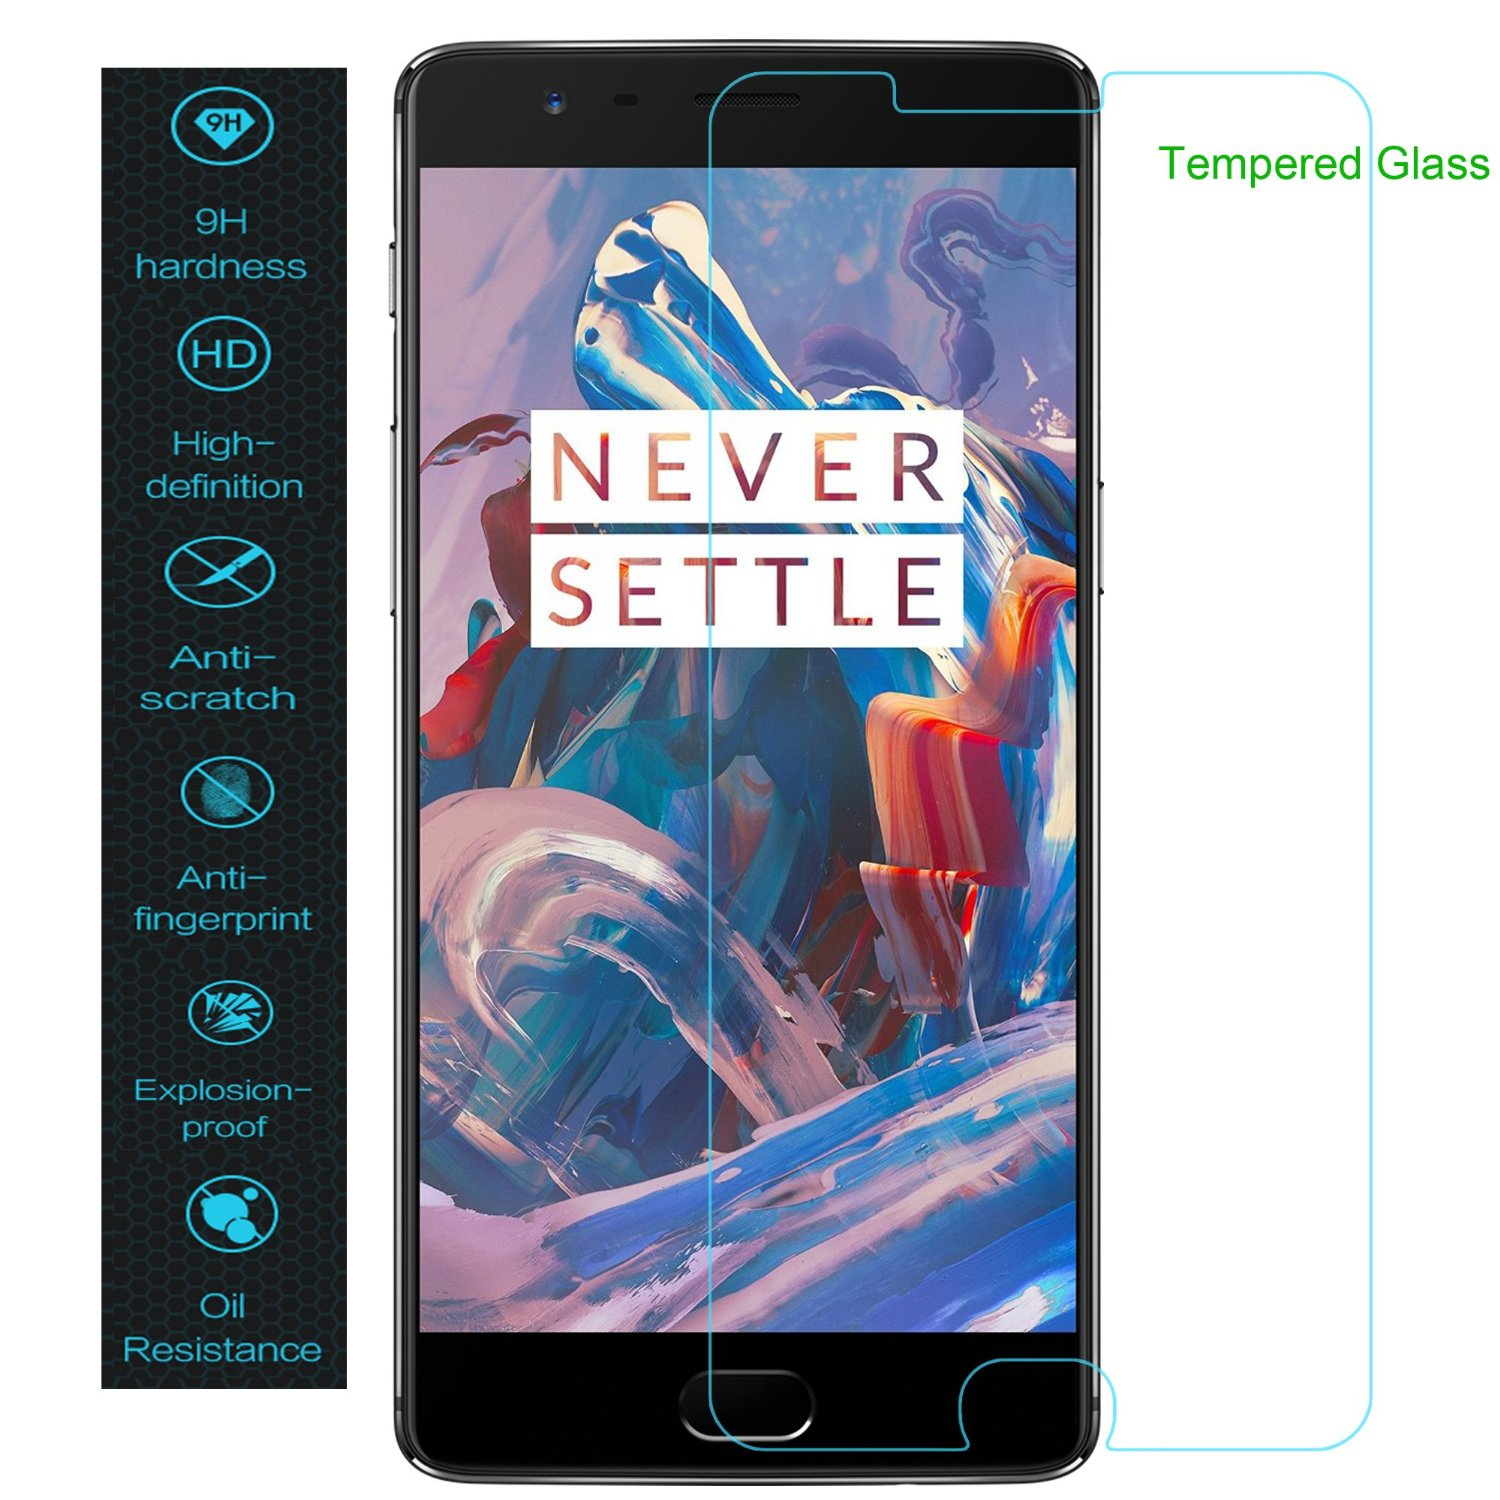 OnePlus 3 / 3T Screen Protector, SANMIN Tempered Glass Anti-fingerprints Crystal Clear 0.33mm Ultra Thin 9H Screen Hardness Screen Protector for OnePlus 3 and OnePlus 3T(2016)